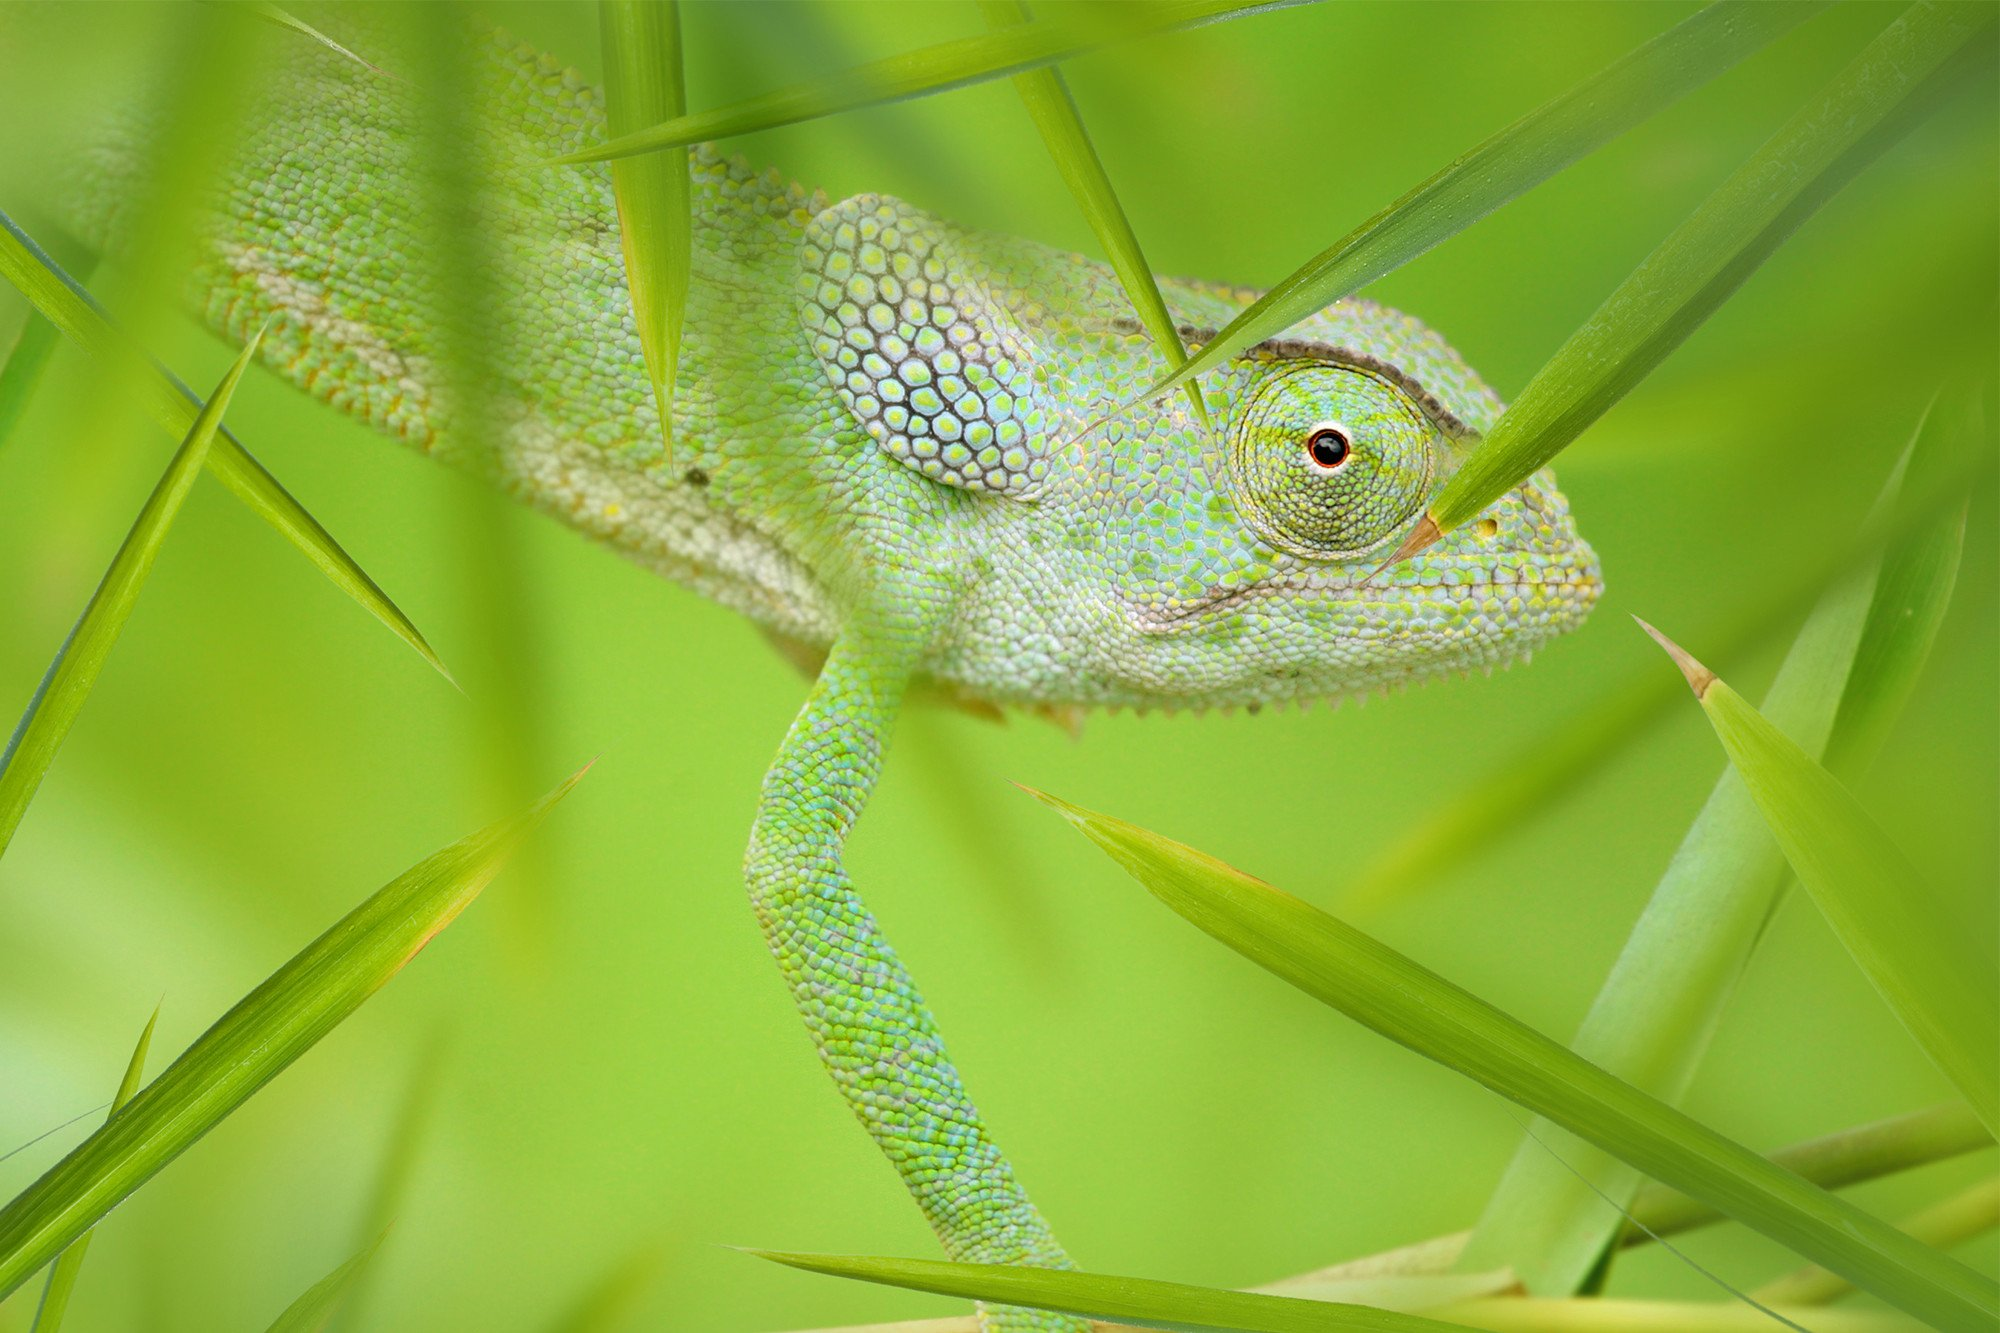 Ex-Iran military leader: Western nations use lizards to spy